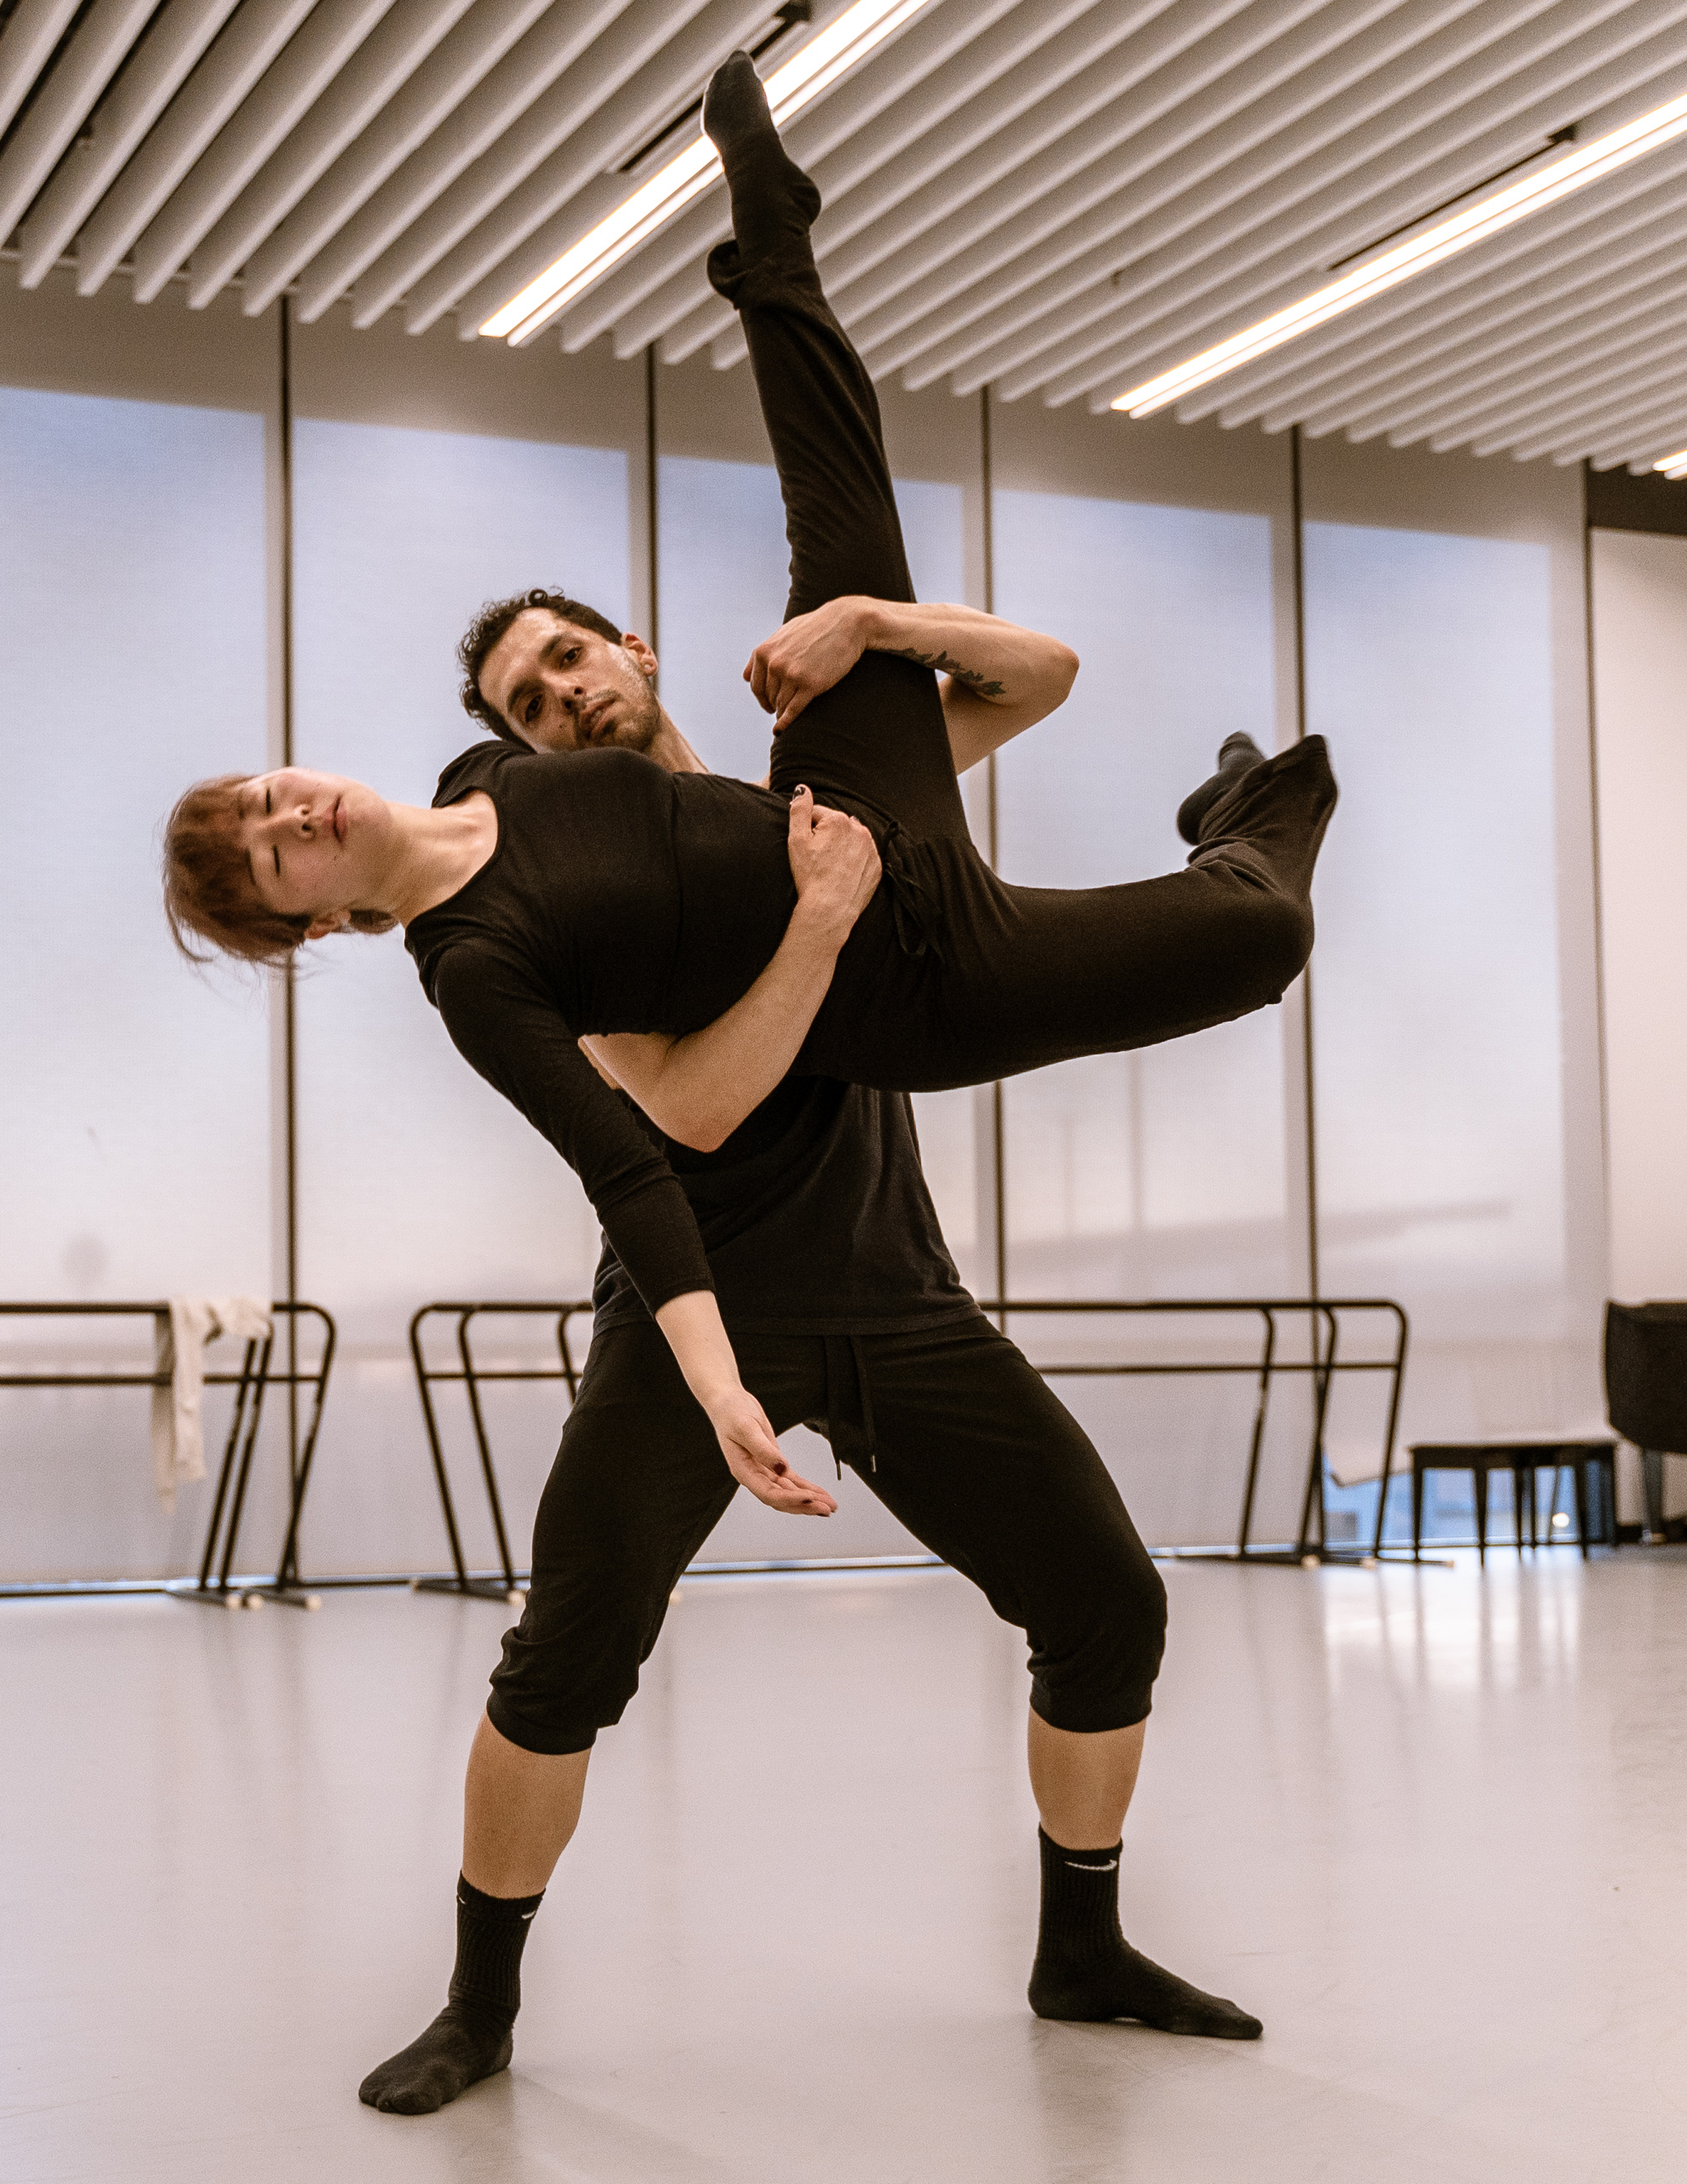 """SMC dance major Mio Kato (playing Envy), 25, from Chiba, Japan, and student choreographer Erik Fine, 27, from Chicago, work on a section of Fine's new work """"seven"""" at SMC's Core Performance Center on Thursday, March 7, 2019. The work is titled with the number seven written in tally marks. """"seven"""" refers to the seven deadly sins and Dante's _Inferno_. In Fine's video game inspired telling, the deadly sins are all game bosses. """"seven"""" will premiere at Synapse Dance Theater at the Broad Stage at SMC's Performing Arts Center campus on Friday and Saturday, May 24 and 25. (Glenn Zucman/The Corsair)"""